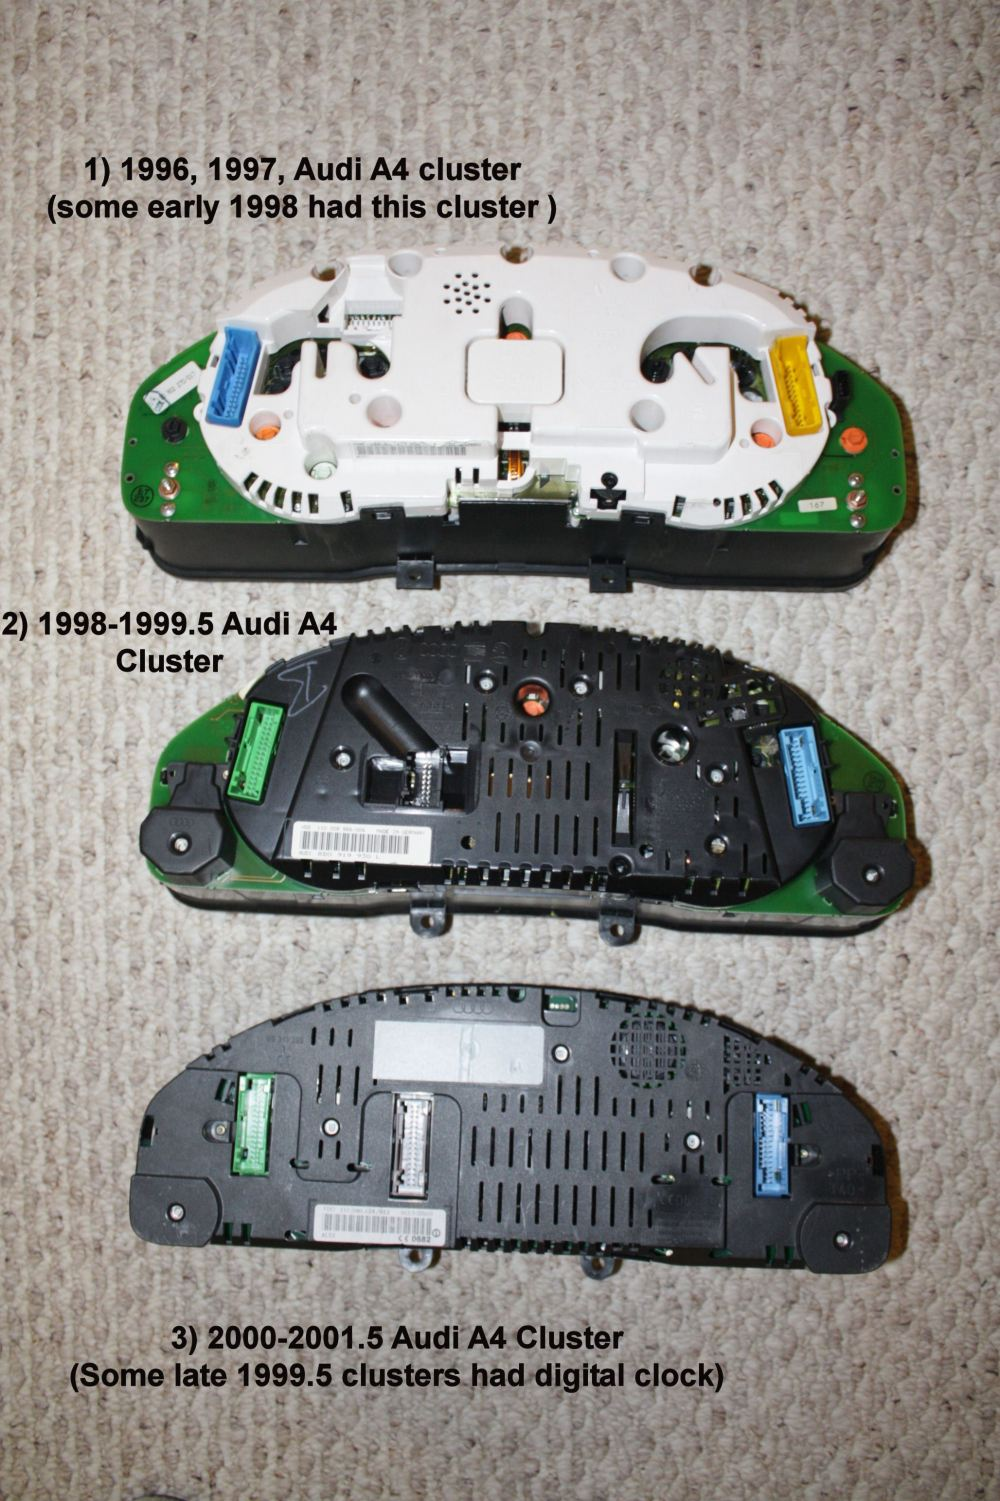 medium resolution of understanding differences between audi a4 clusters and the compatibility issues